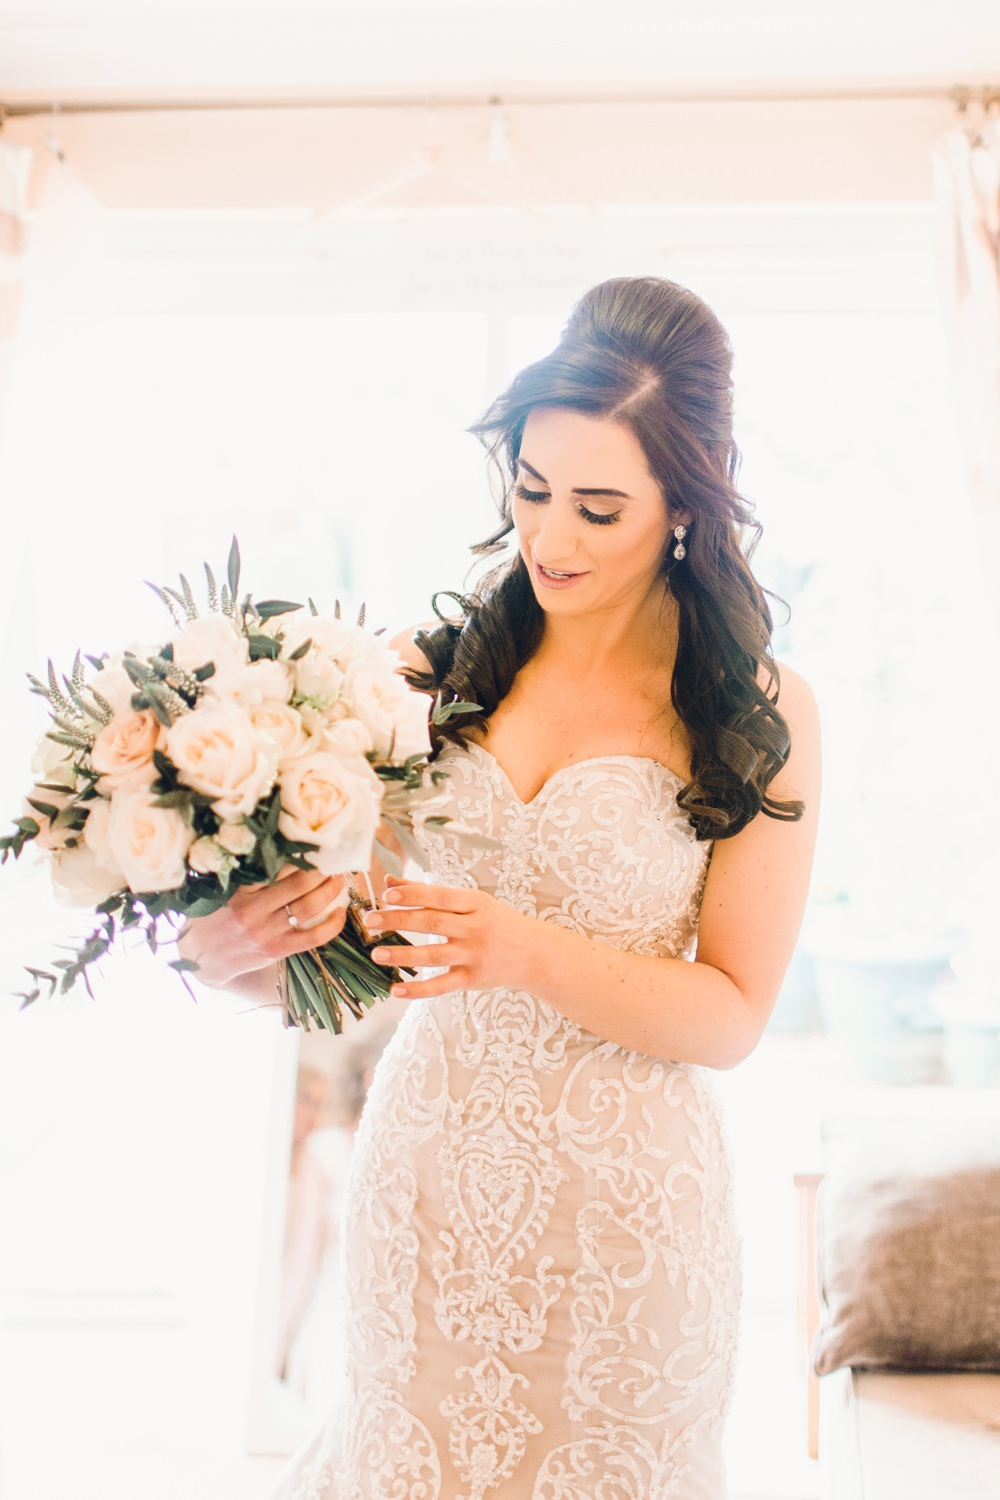 Bride Bridal Dress Gown Ivory Lace Champagne Satin Sweetheart Strapless Train Corset Bodice Pearls Llanrhaeadr Springs Wedding Jessica Reeve Photography